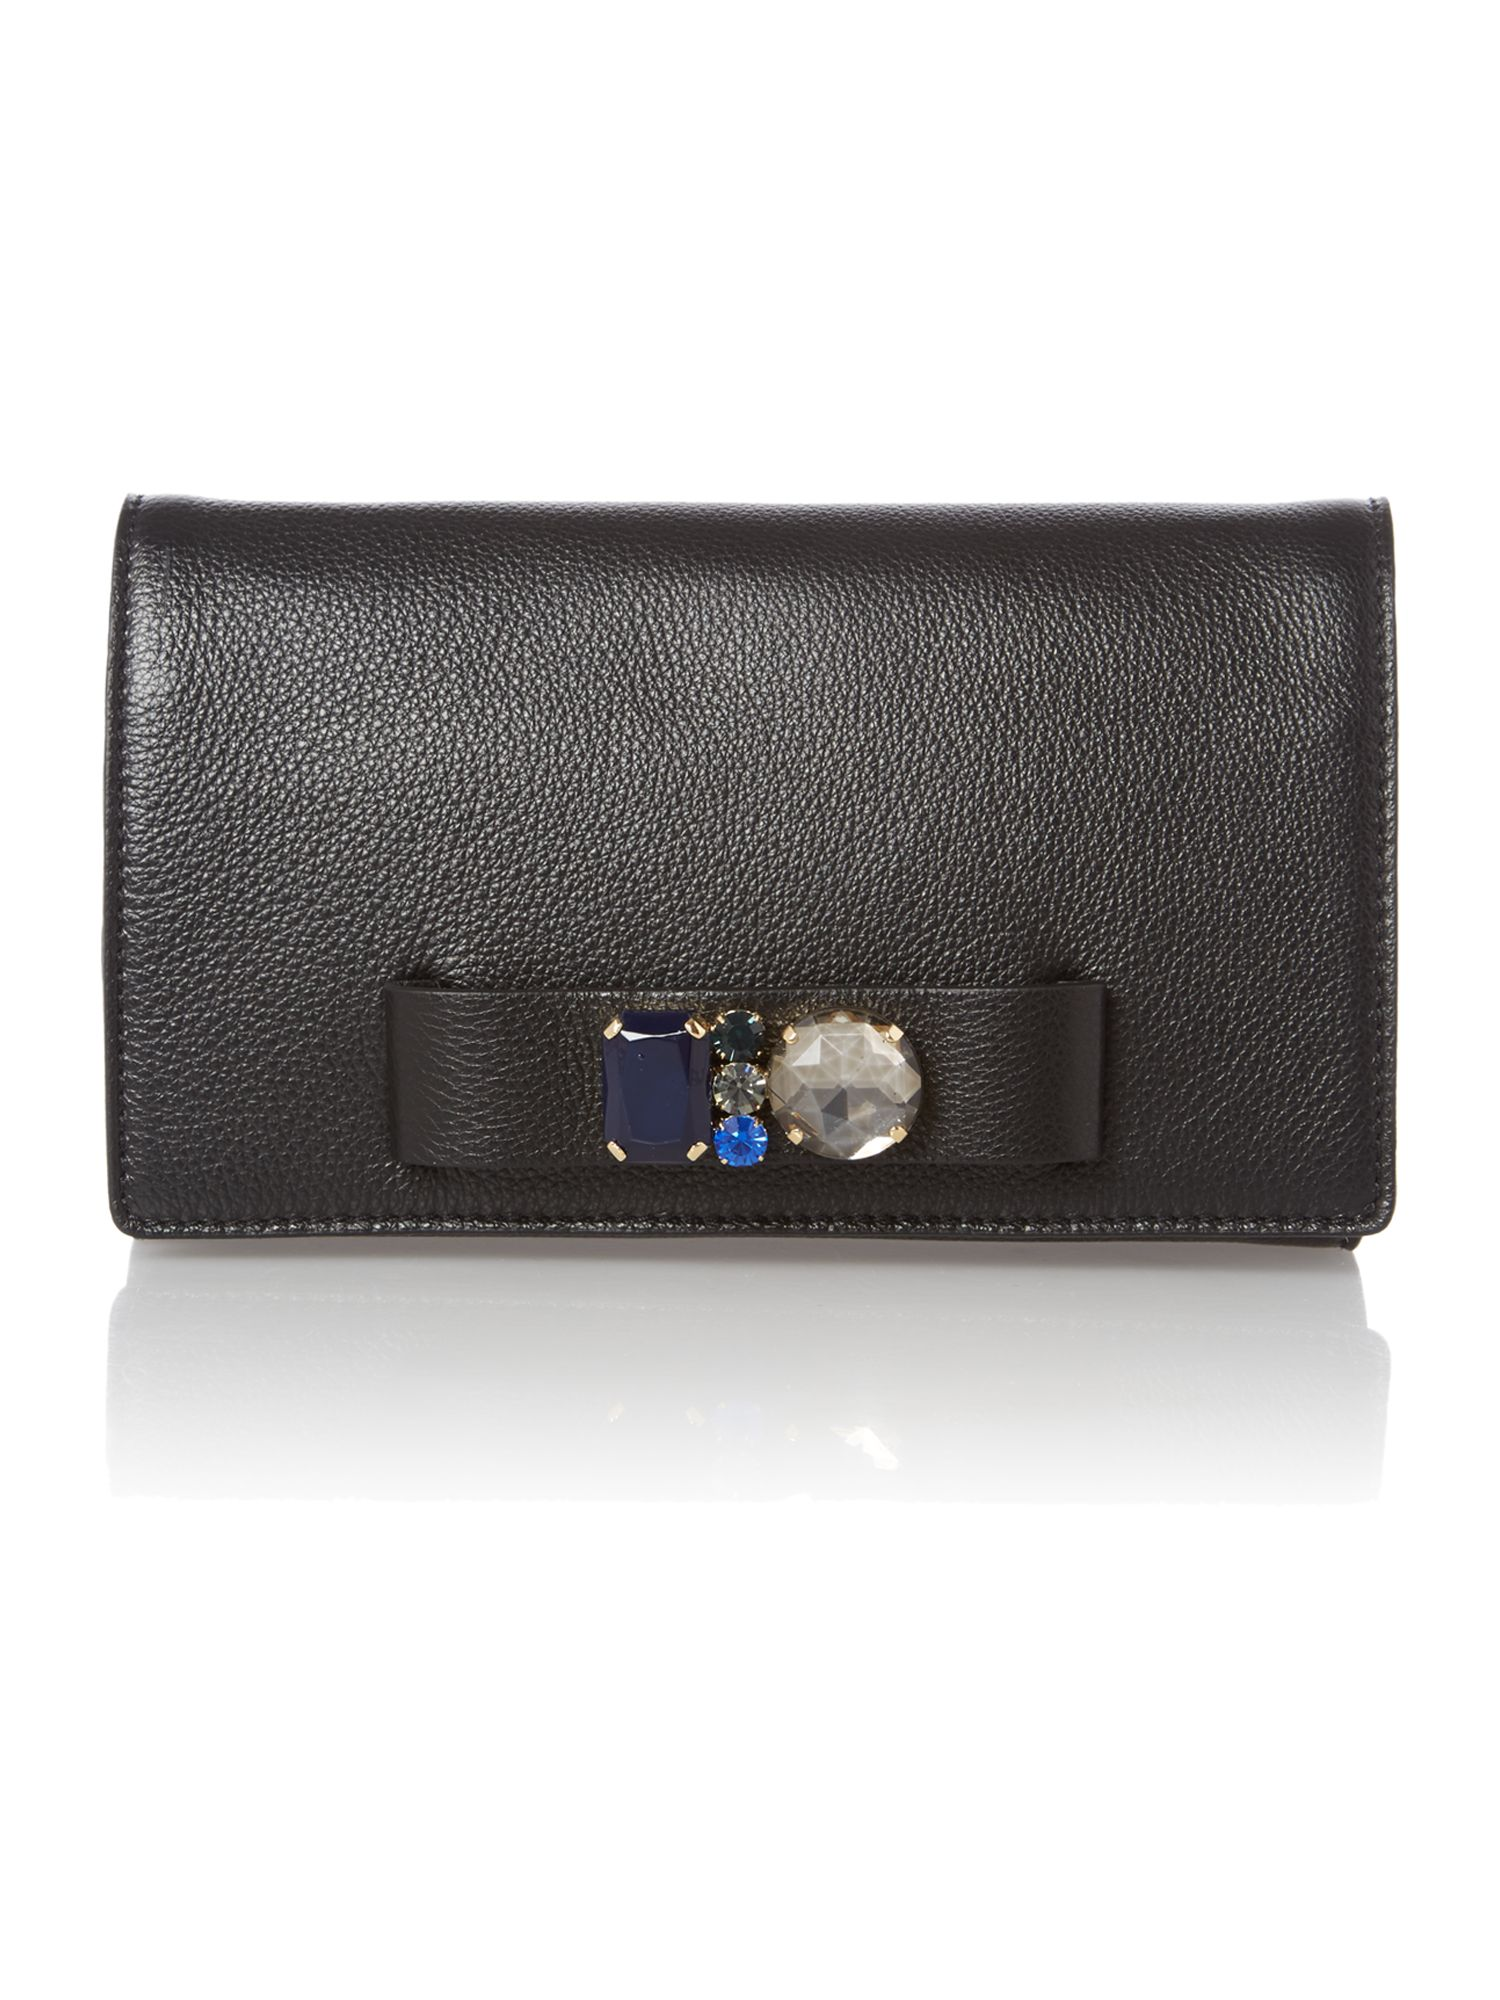 Black mini jewel crossbody bag